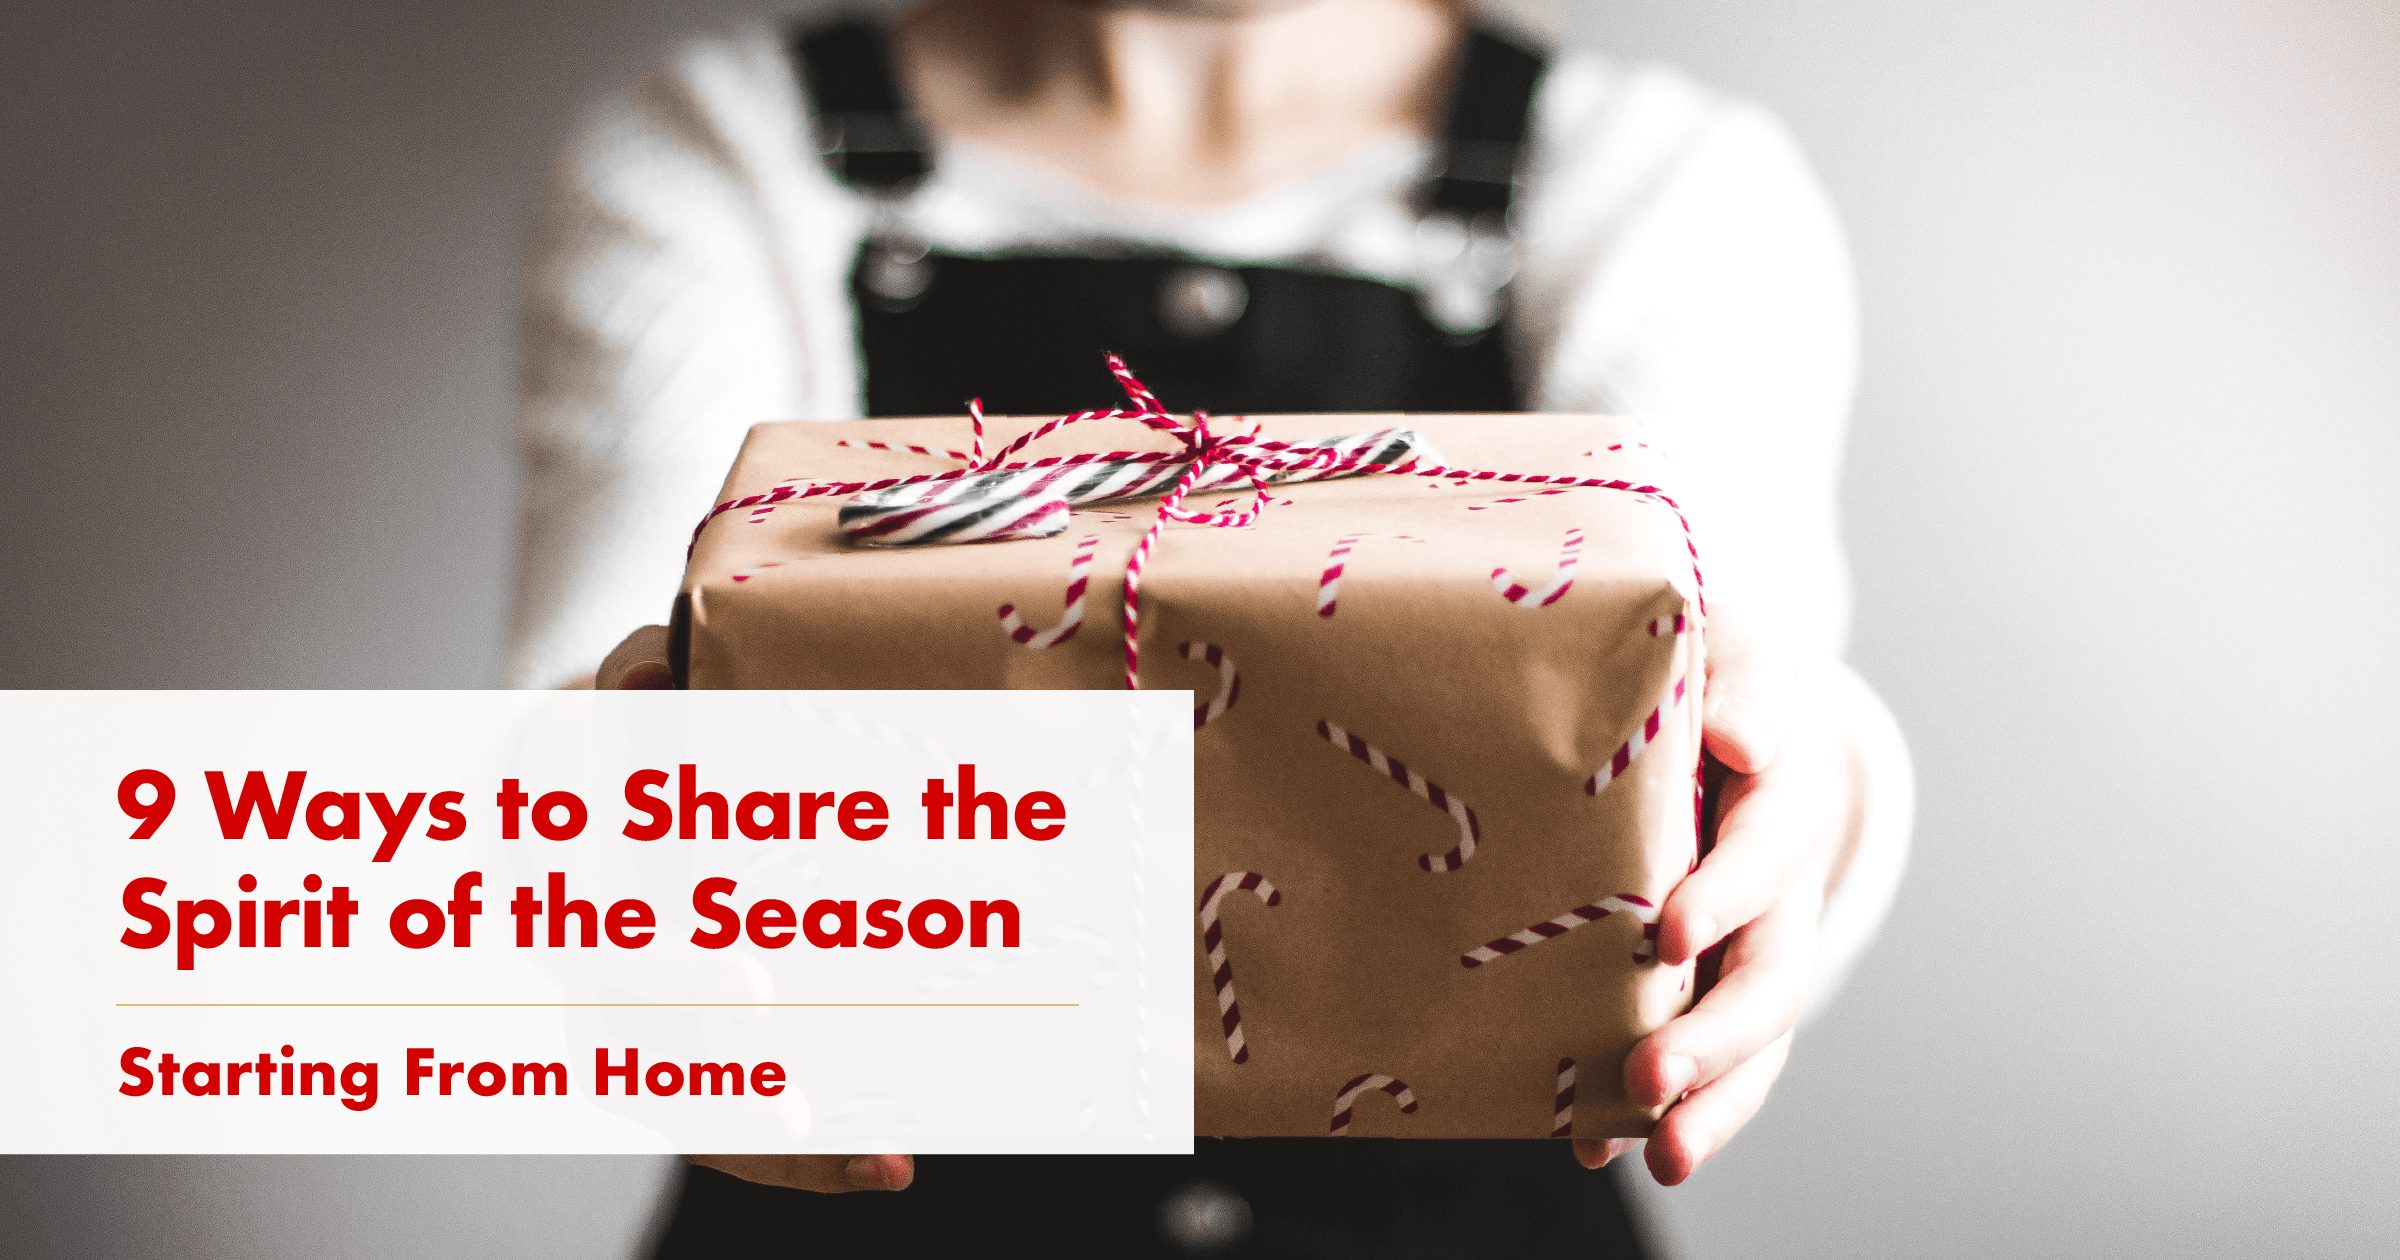 9 Ways to Share the Spirit of the Season - Starting From Home